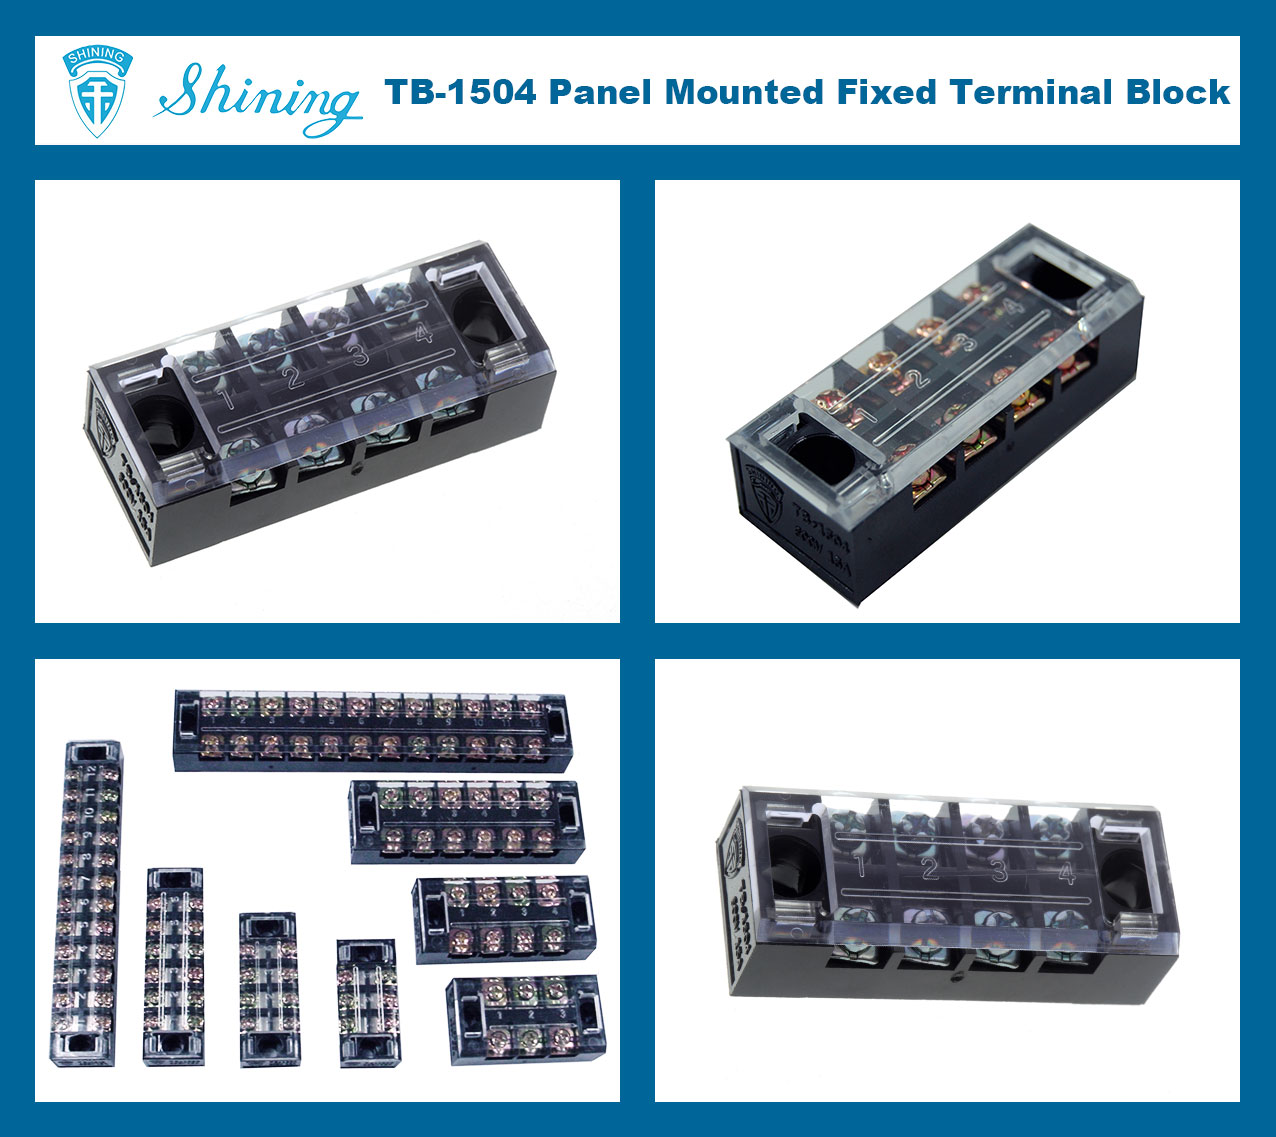 2 Package of Two 4 Position 15A 600V Terminal Block w//Cover RoHS Free #TB-1504